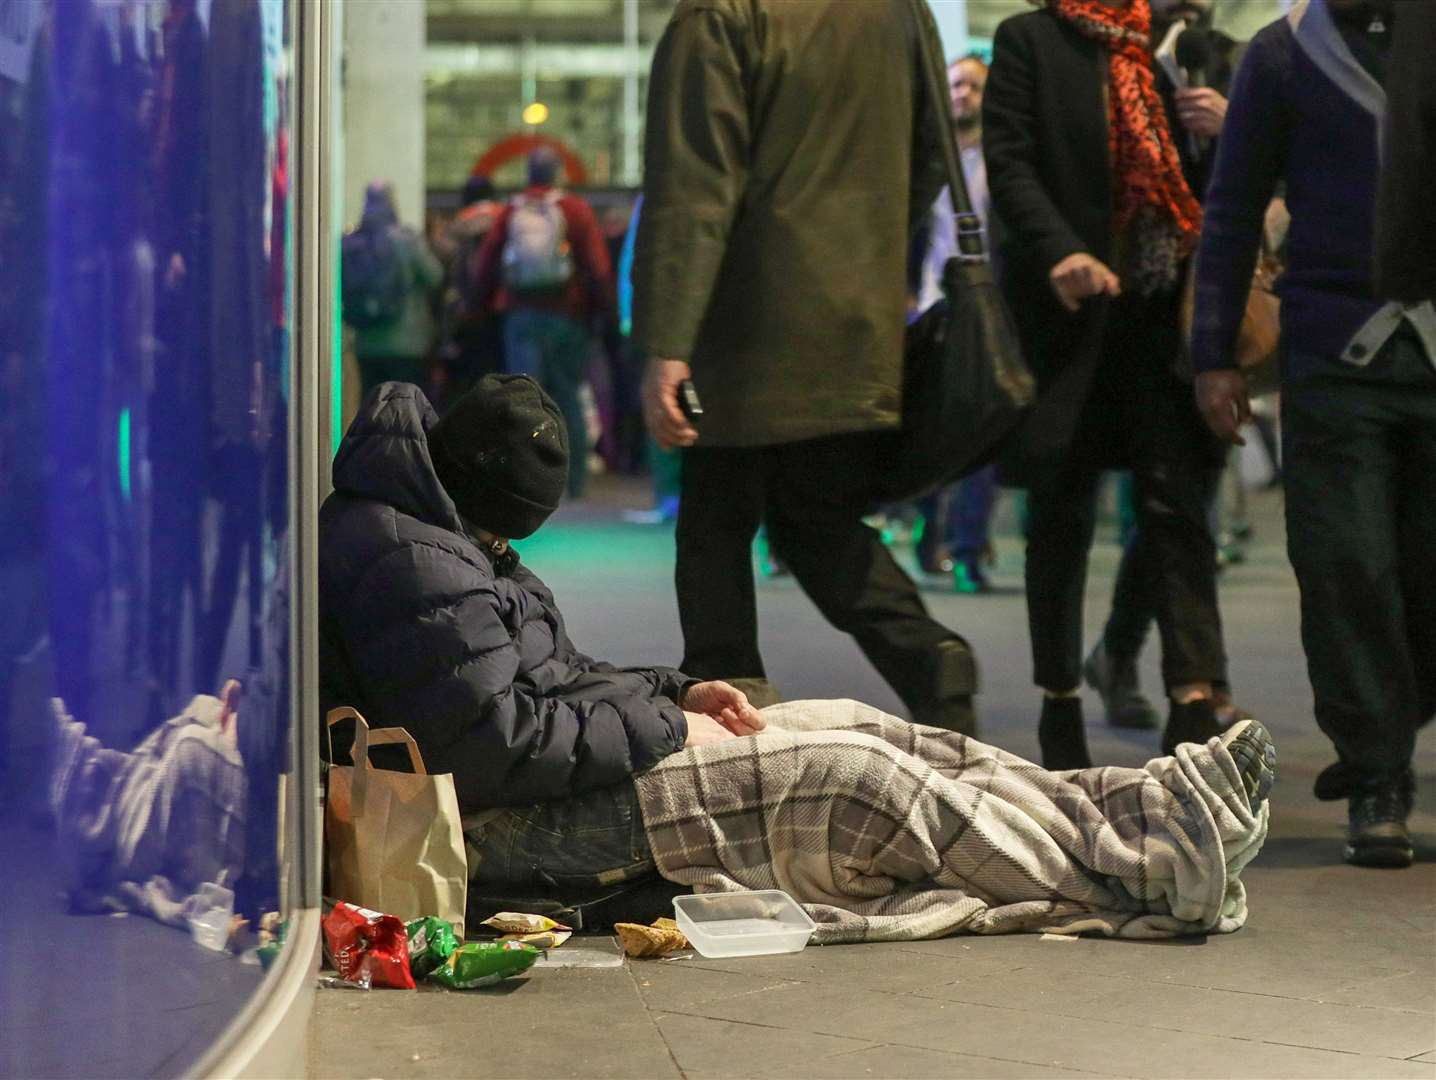 A new scheme to provide health support for homeless people has been launched